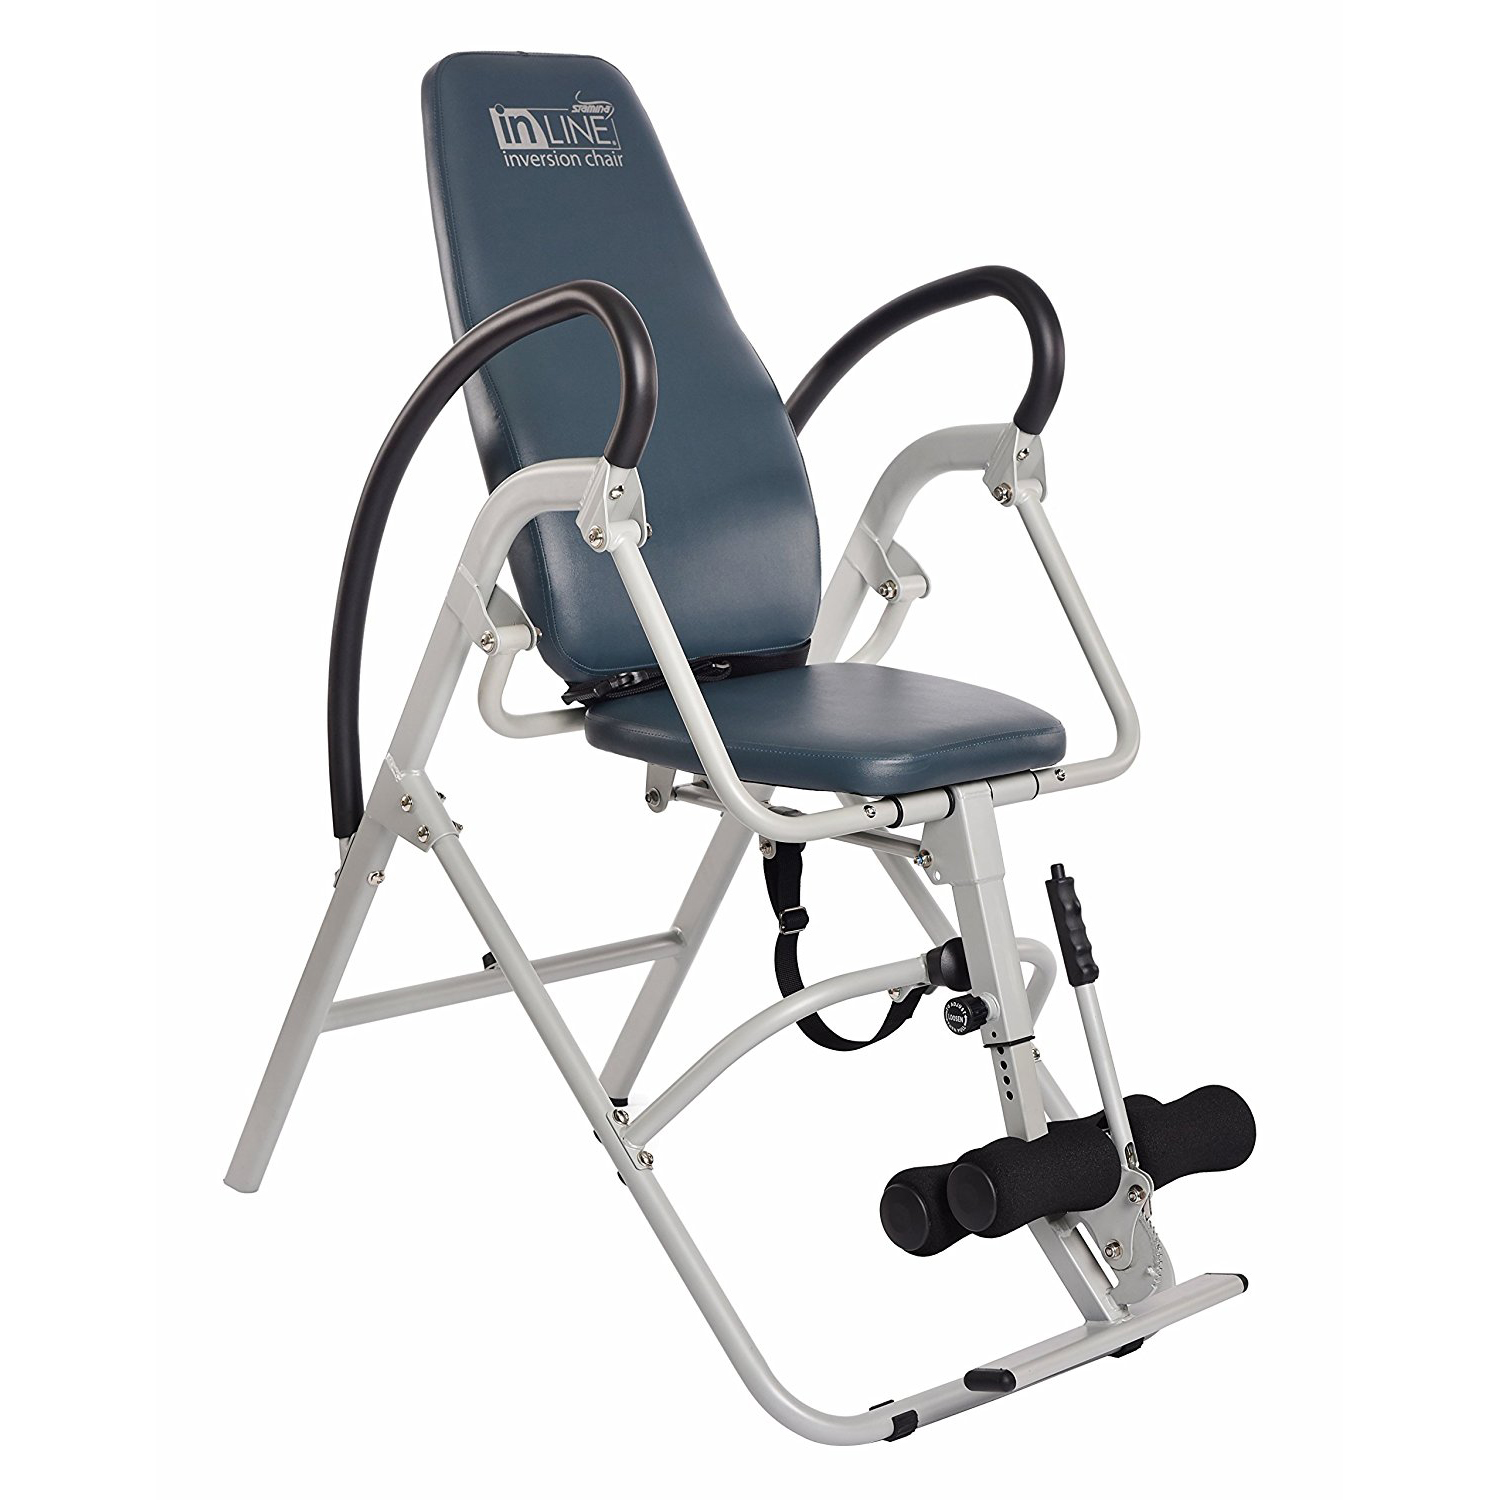 Stamina InLine Gray Back Pain Relief Seated Inversion Therapy Table Chair   1550